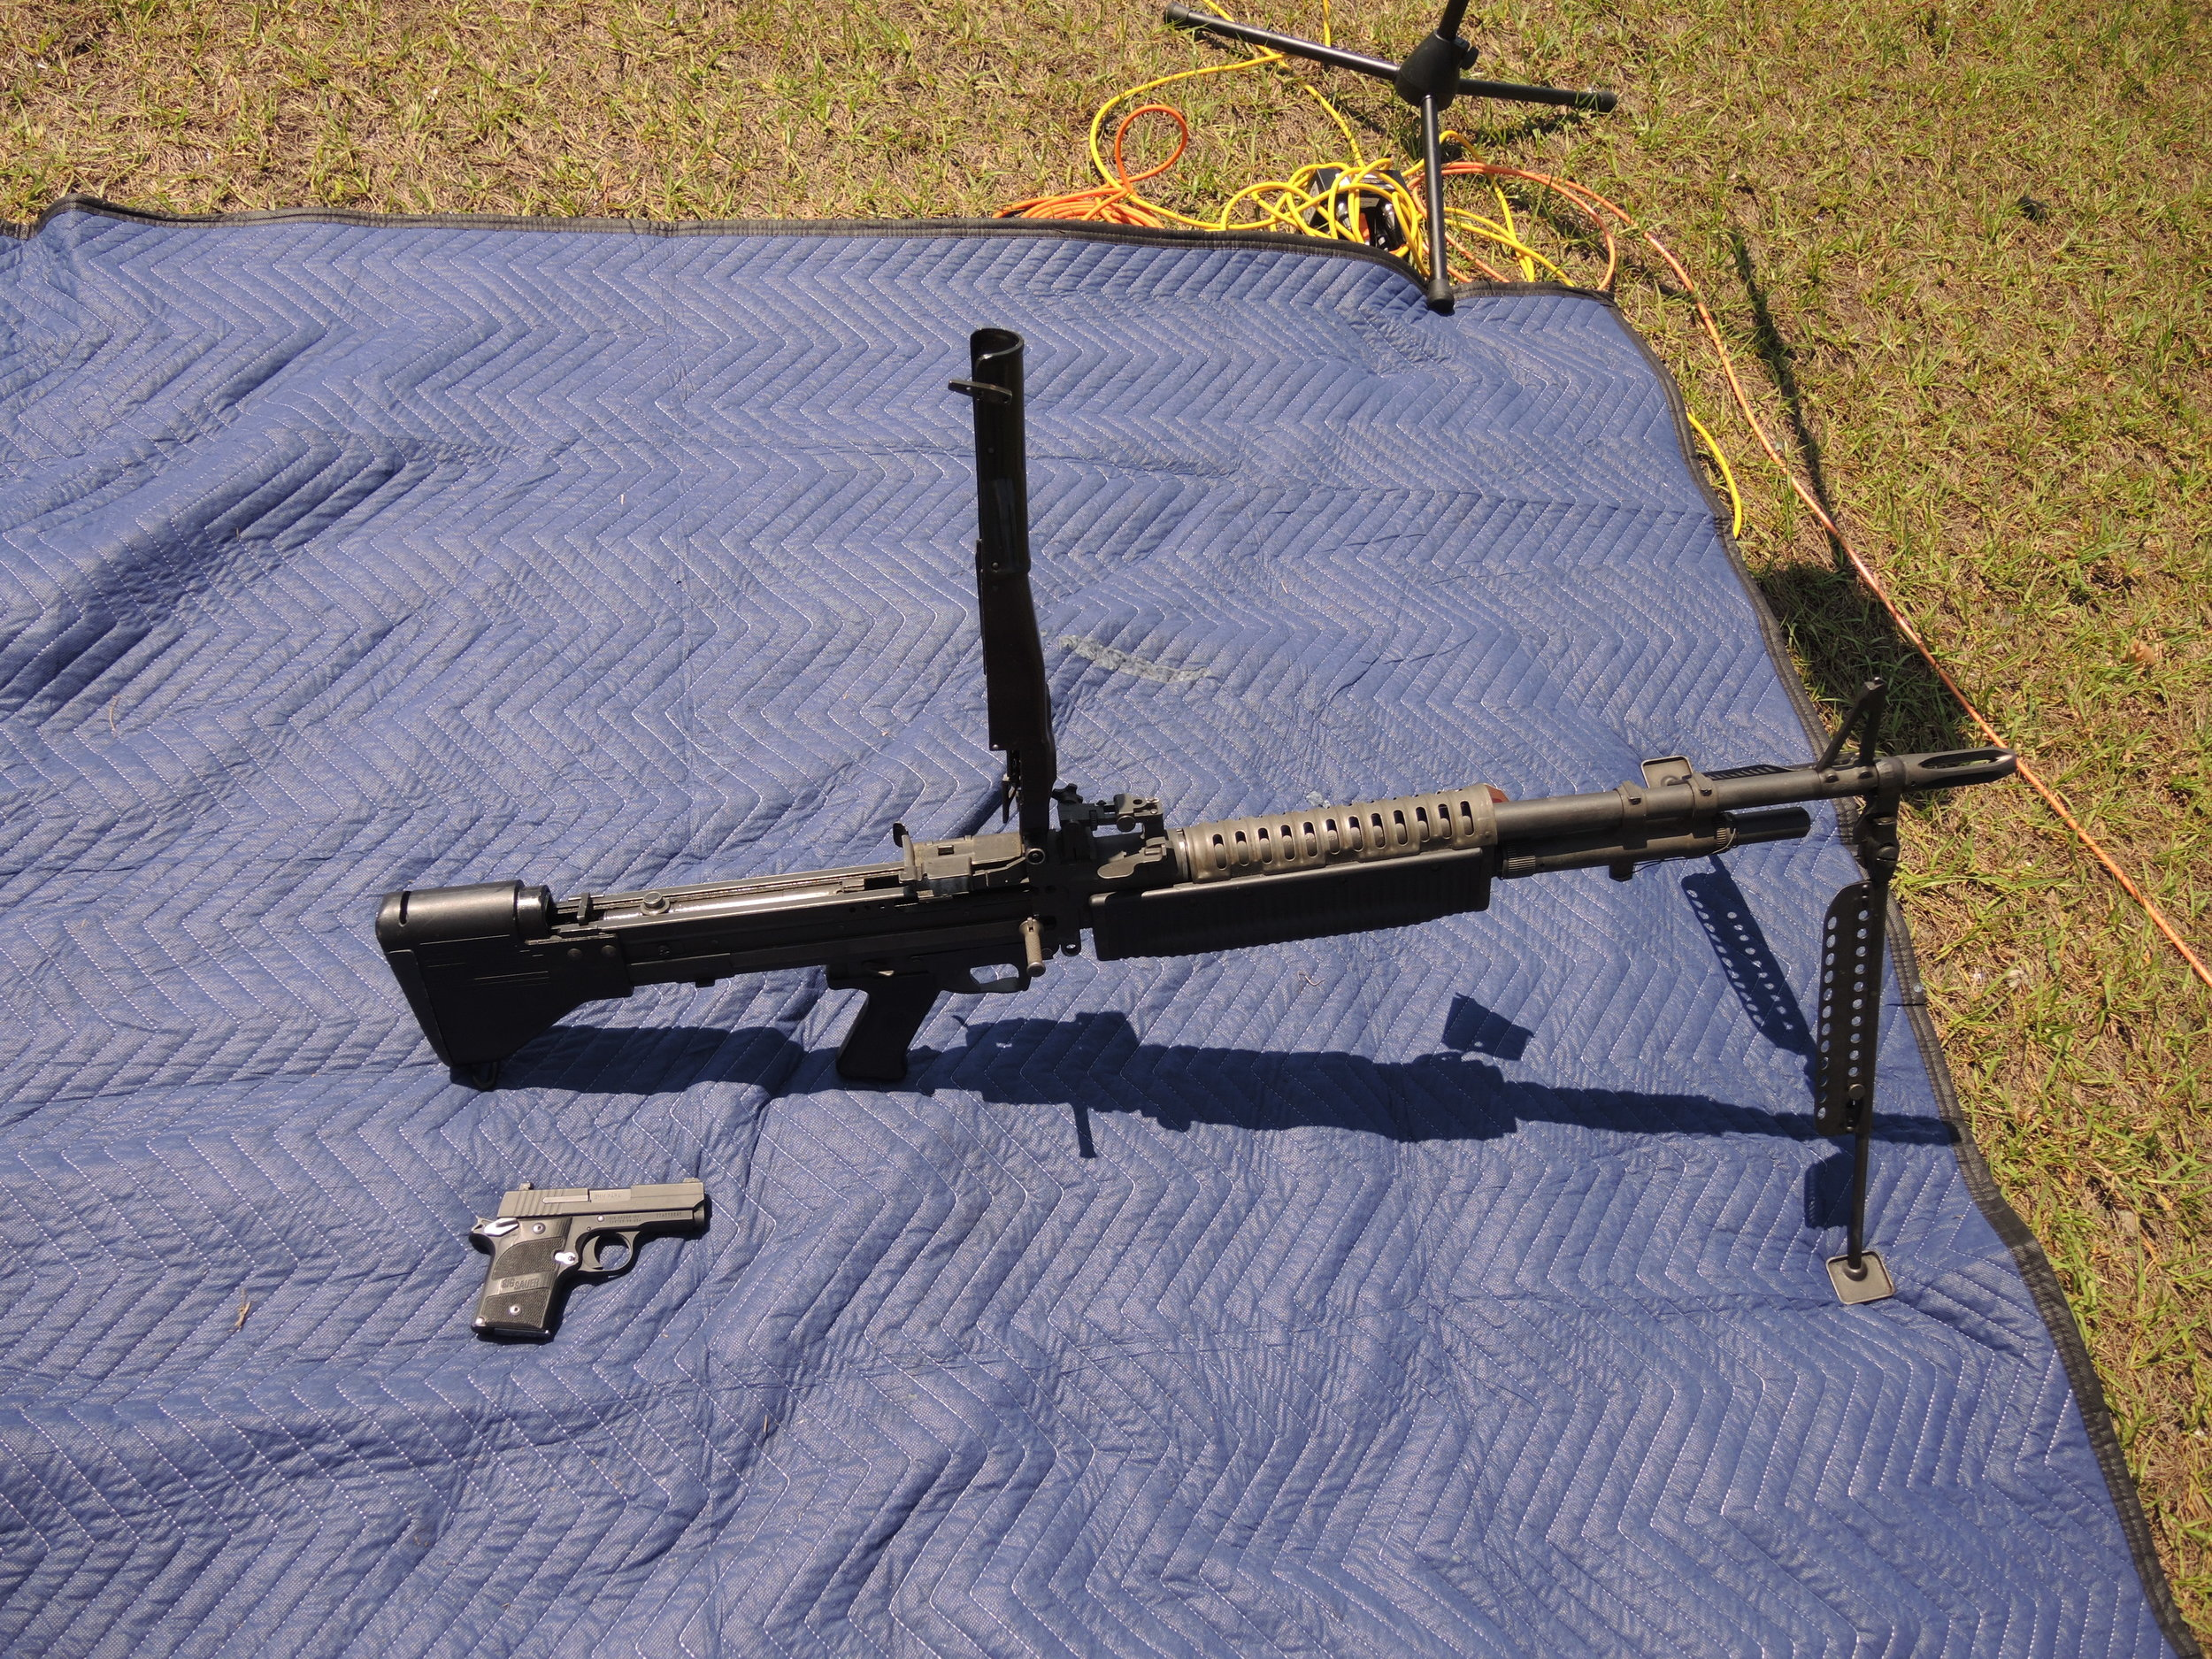 DSCN9968 M60 machine gun vs small 9mm pistol.JPG